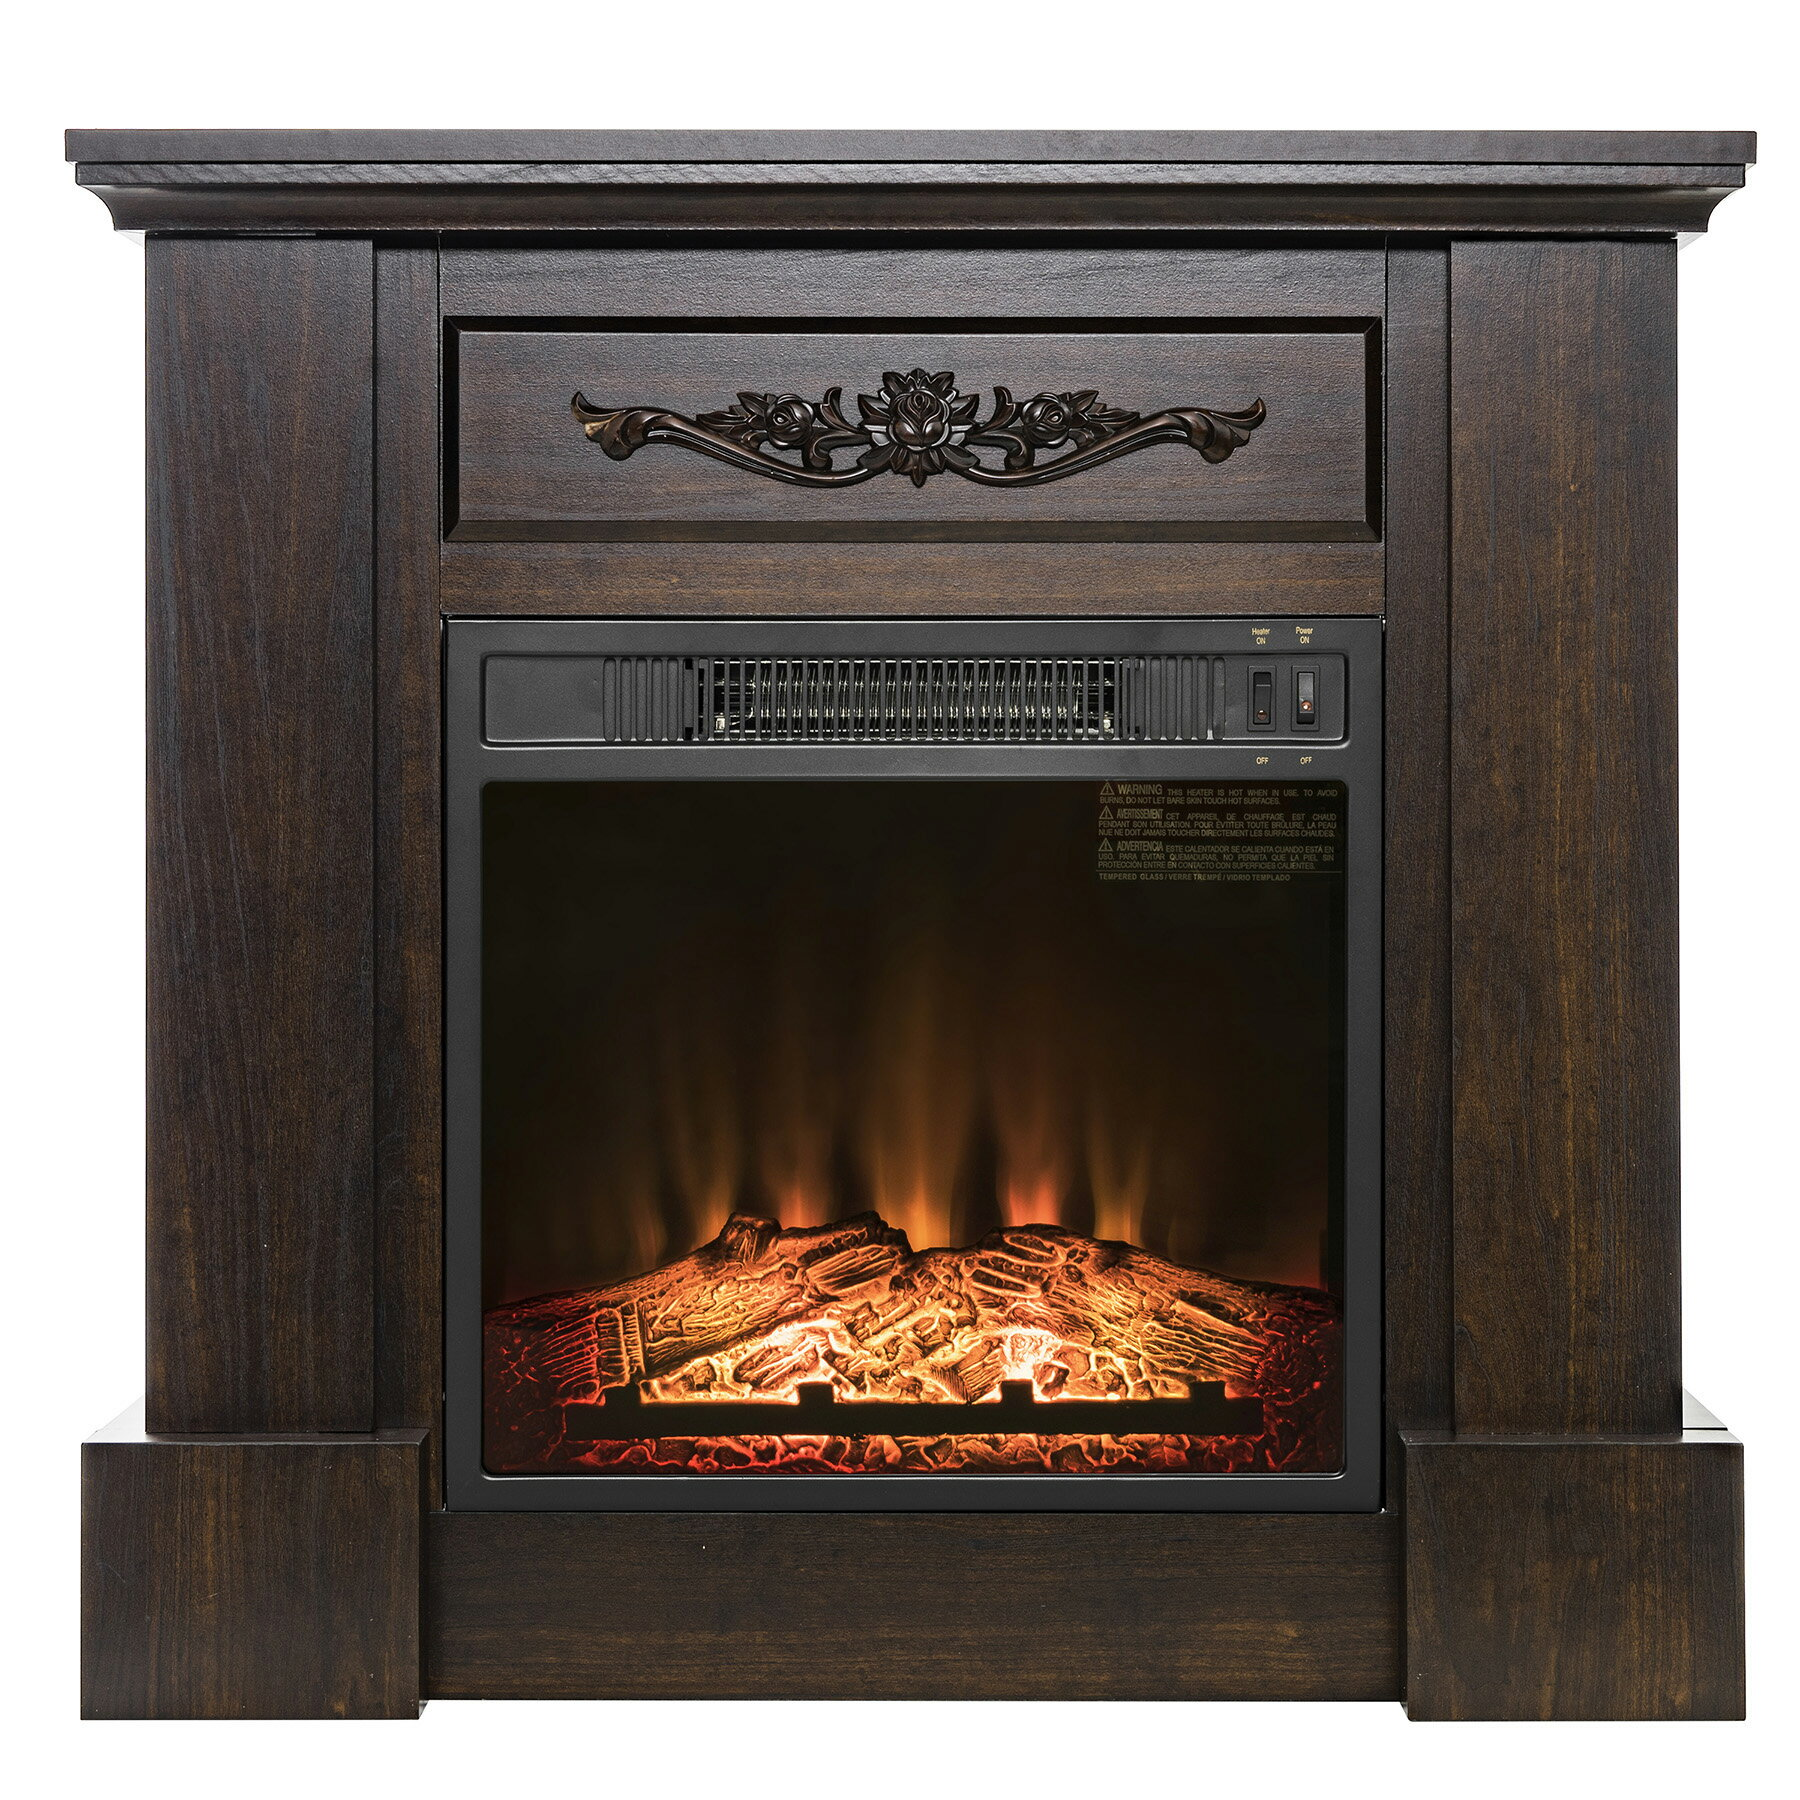 "AKDY 32"" Wooden Mantel Freestanding Insert Electric Fireplace Heater Stove 0"